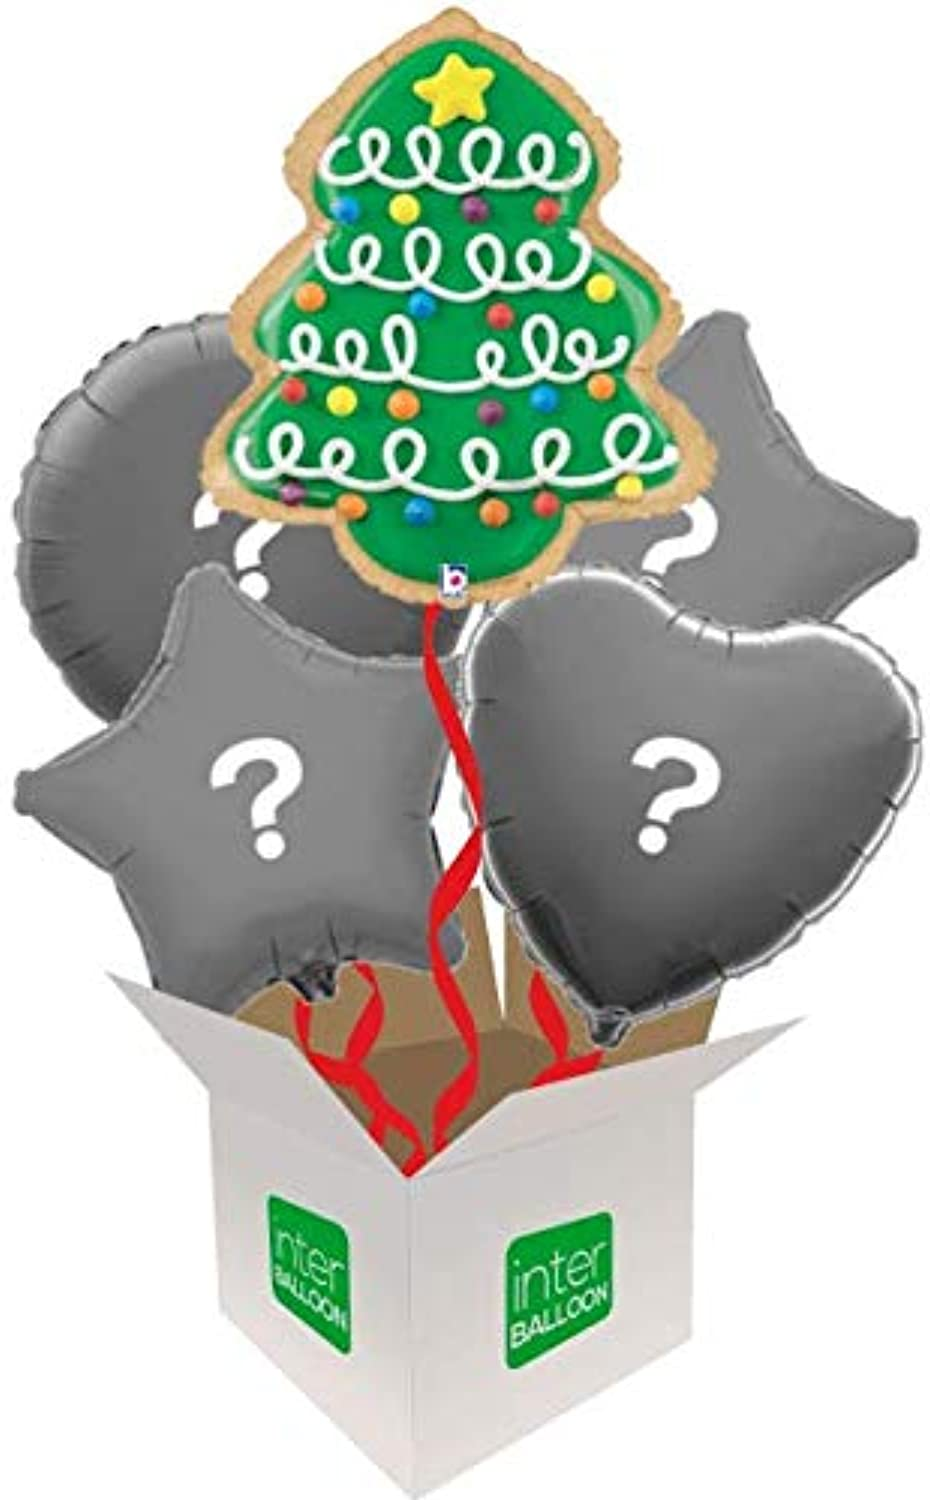 InterBalloon Helium Inflated 25  Christmas Tree Cookie Balloon Delivered in a Box with 4 Extra Balloons of your choice